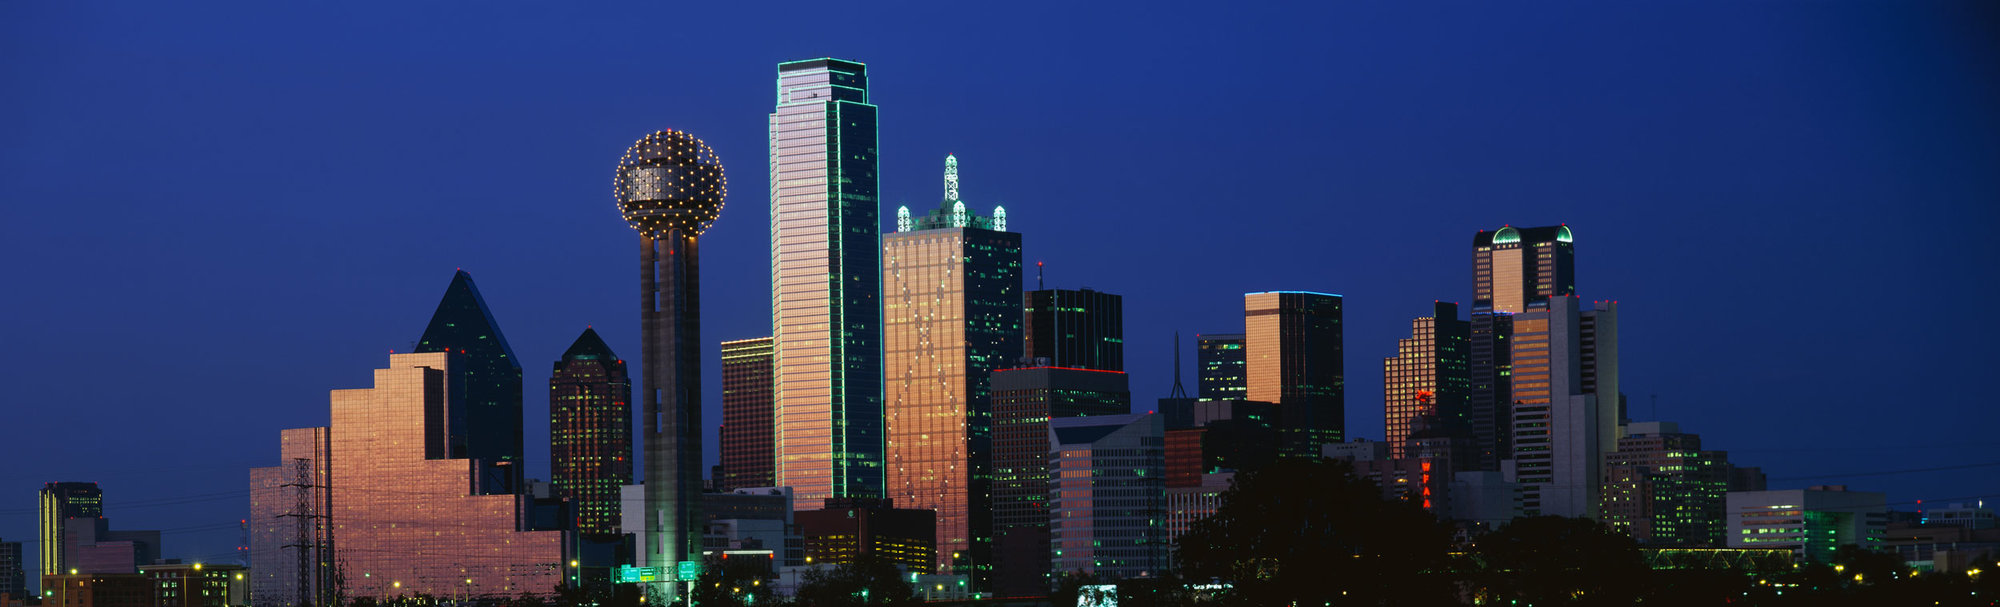 Dallas skyline.